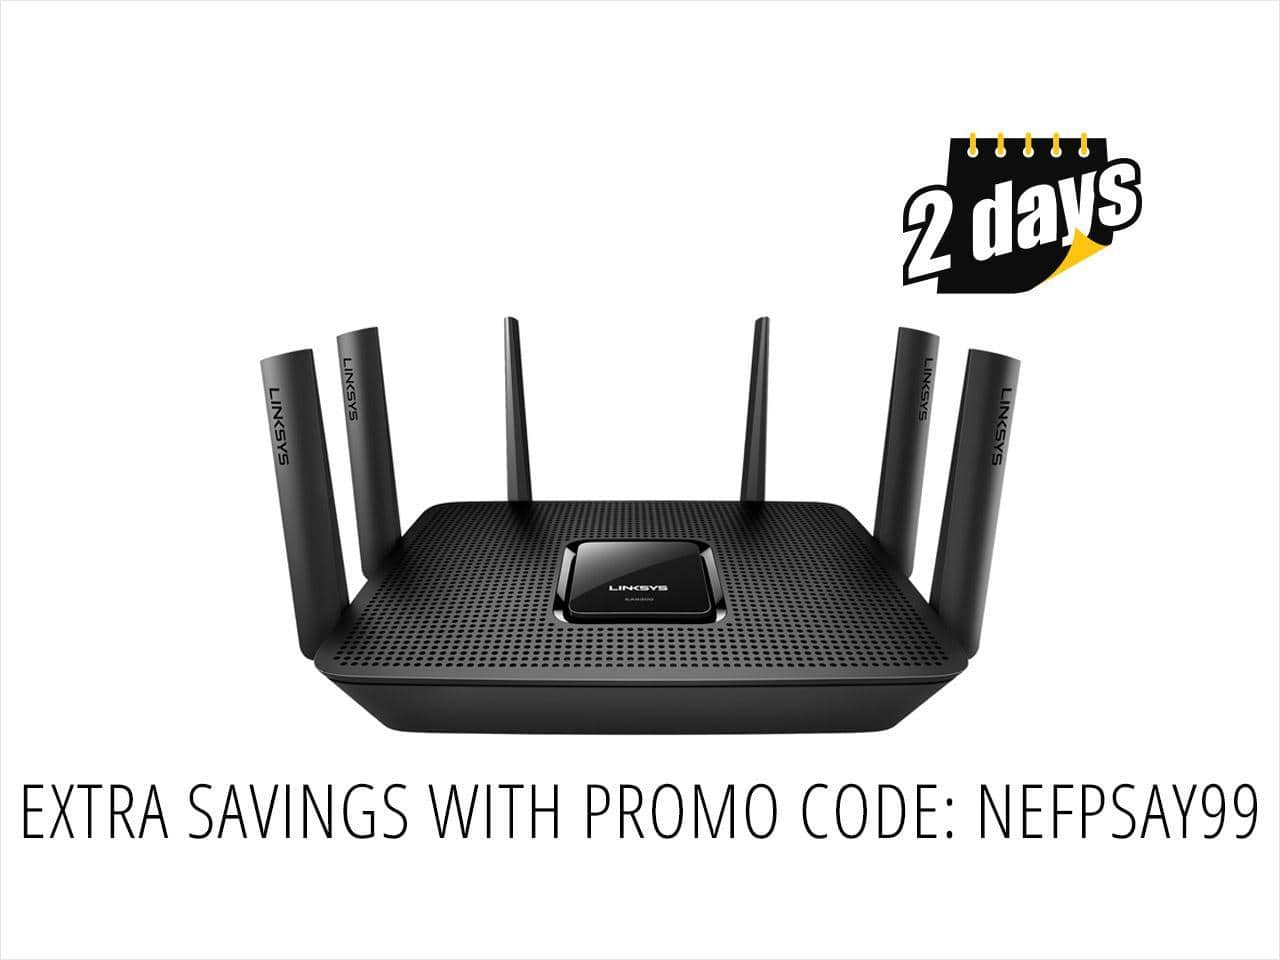 Linksys EA9300 AC4000 MU-MIMO Router $200 AC@NF